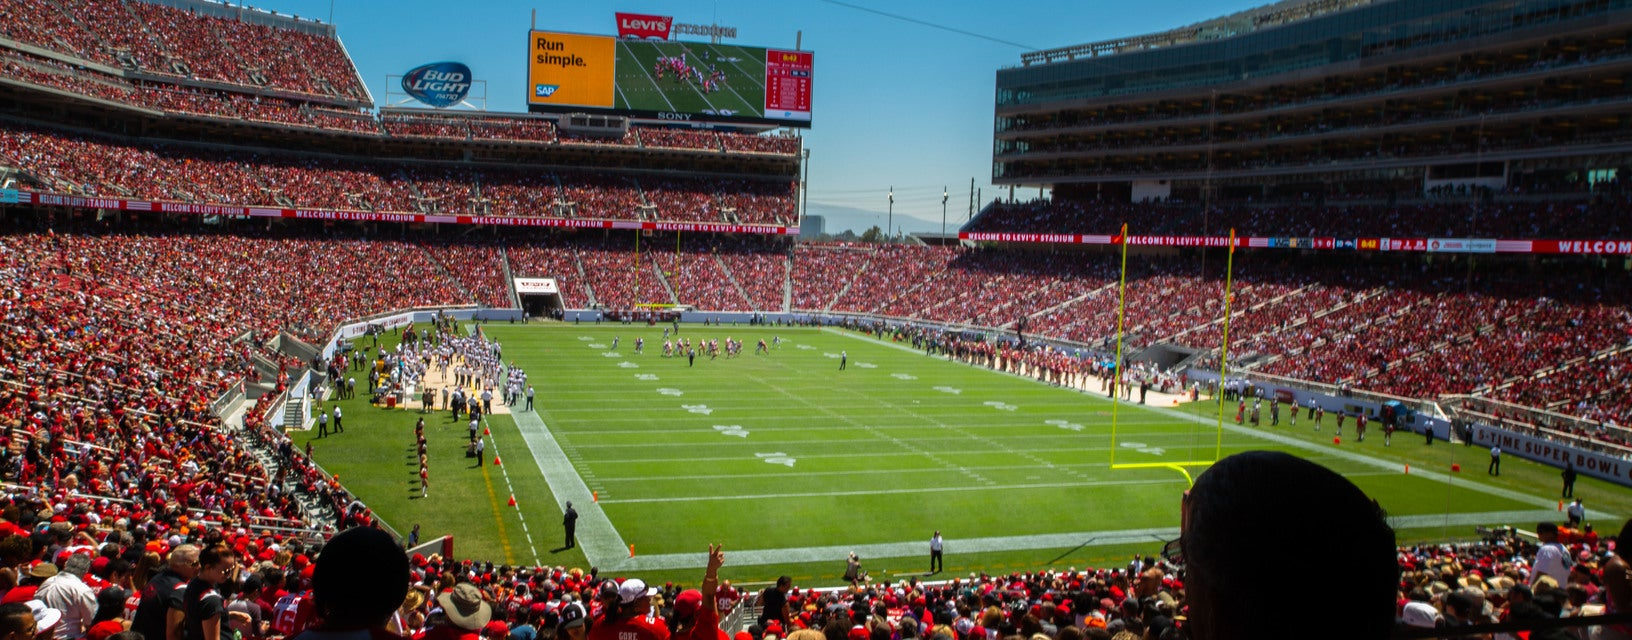 Seat view from Lower Endzone